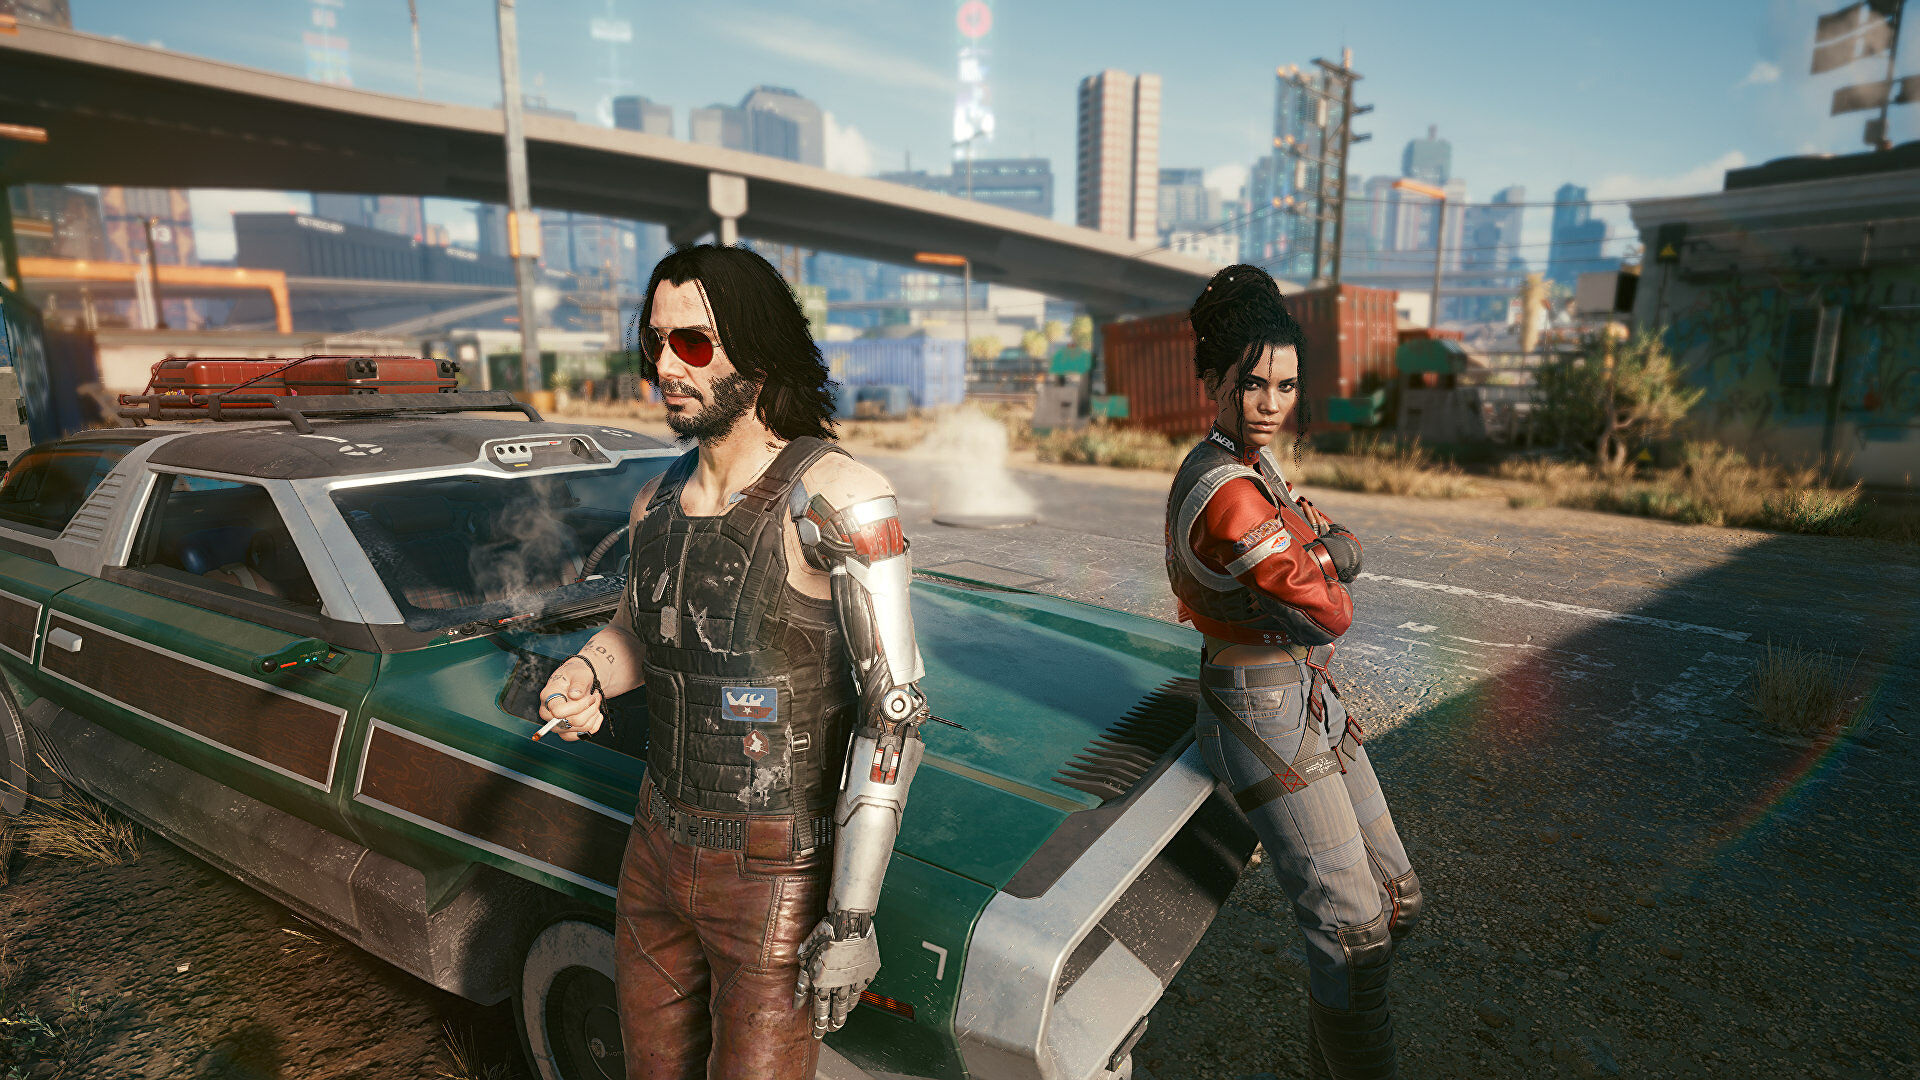 Cyberpunk 2077 multiplayer is no longer CD Projekt Red's next big game